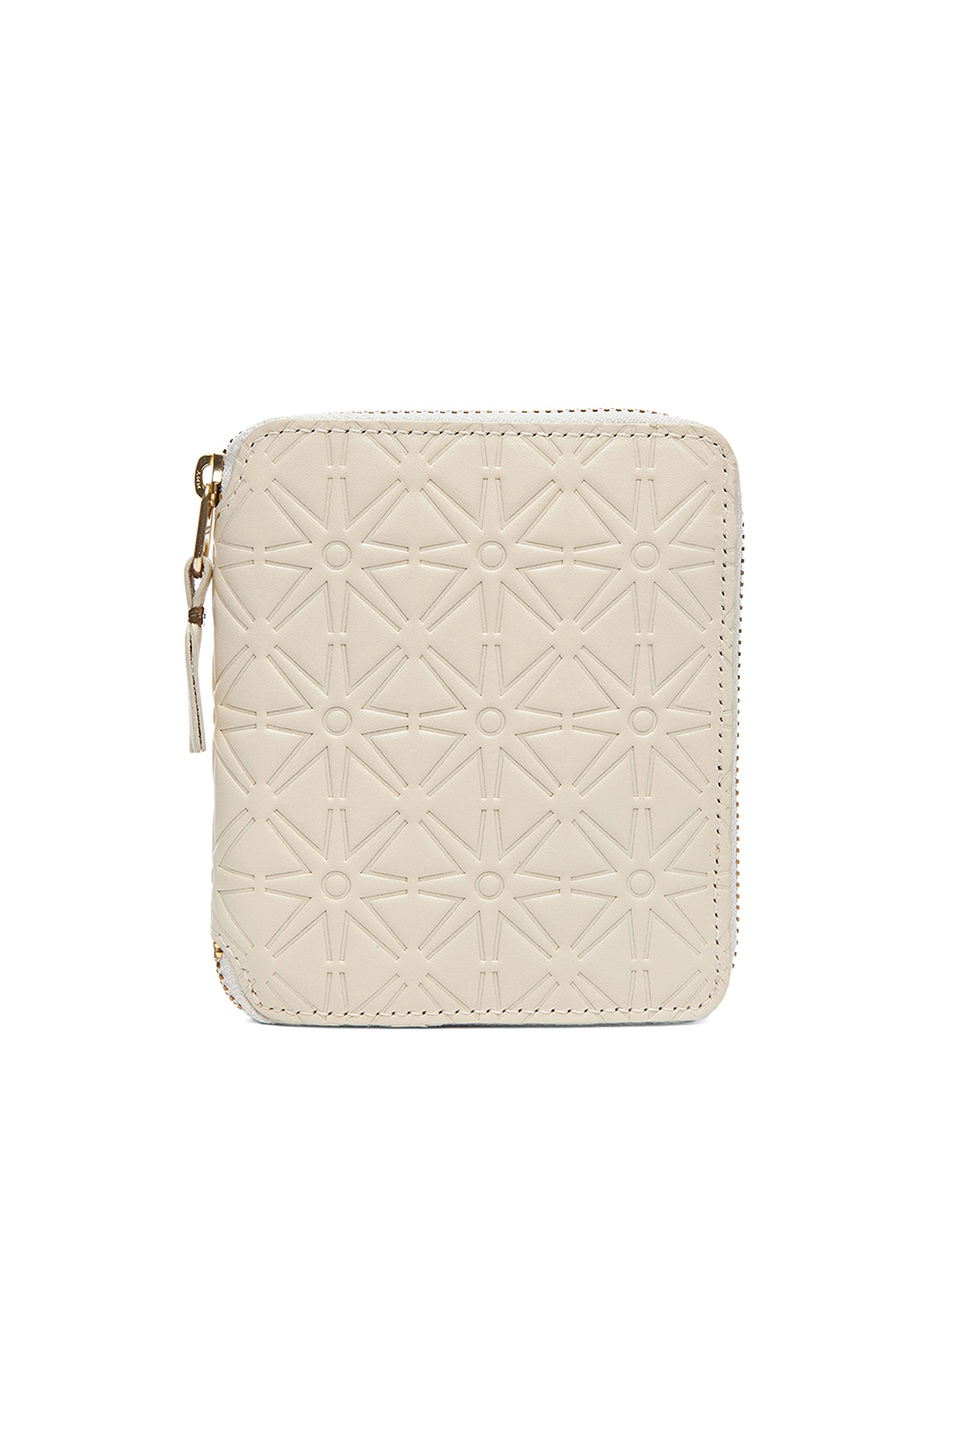 COMME DES GARCONS STAR EMBOSSED ZIP FOLD WALLET IN WHITE,GEOMETRIC PRINT